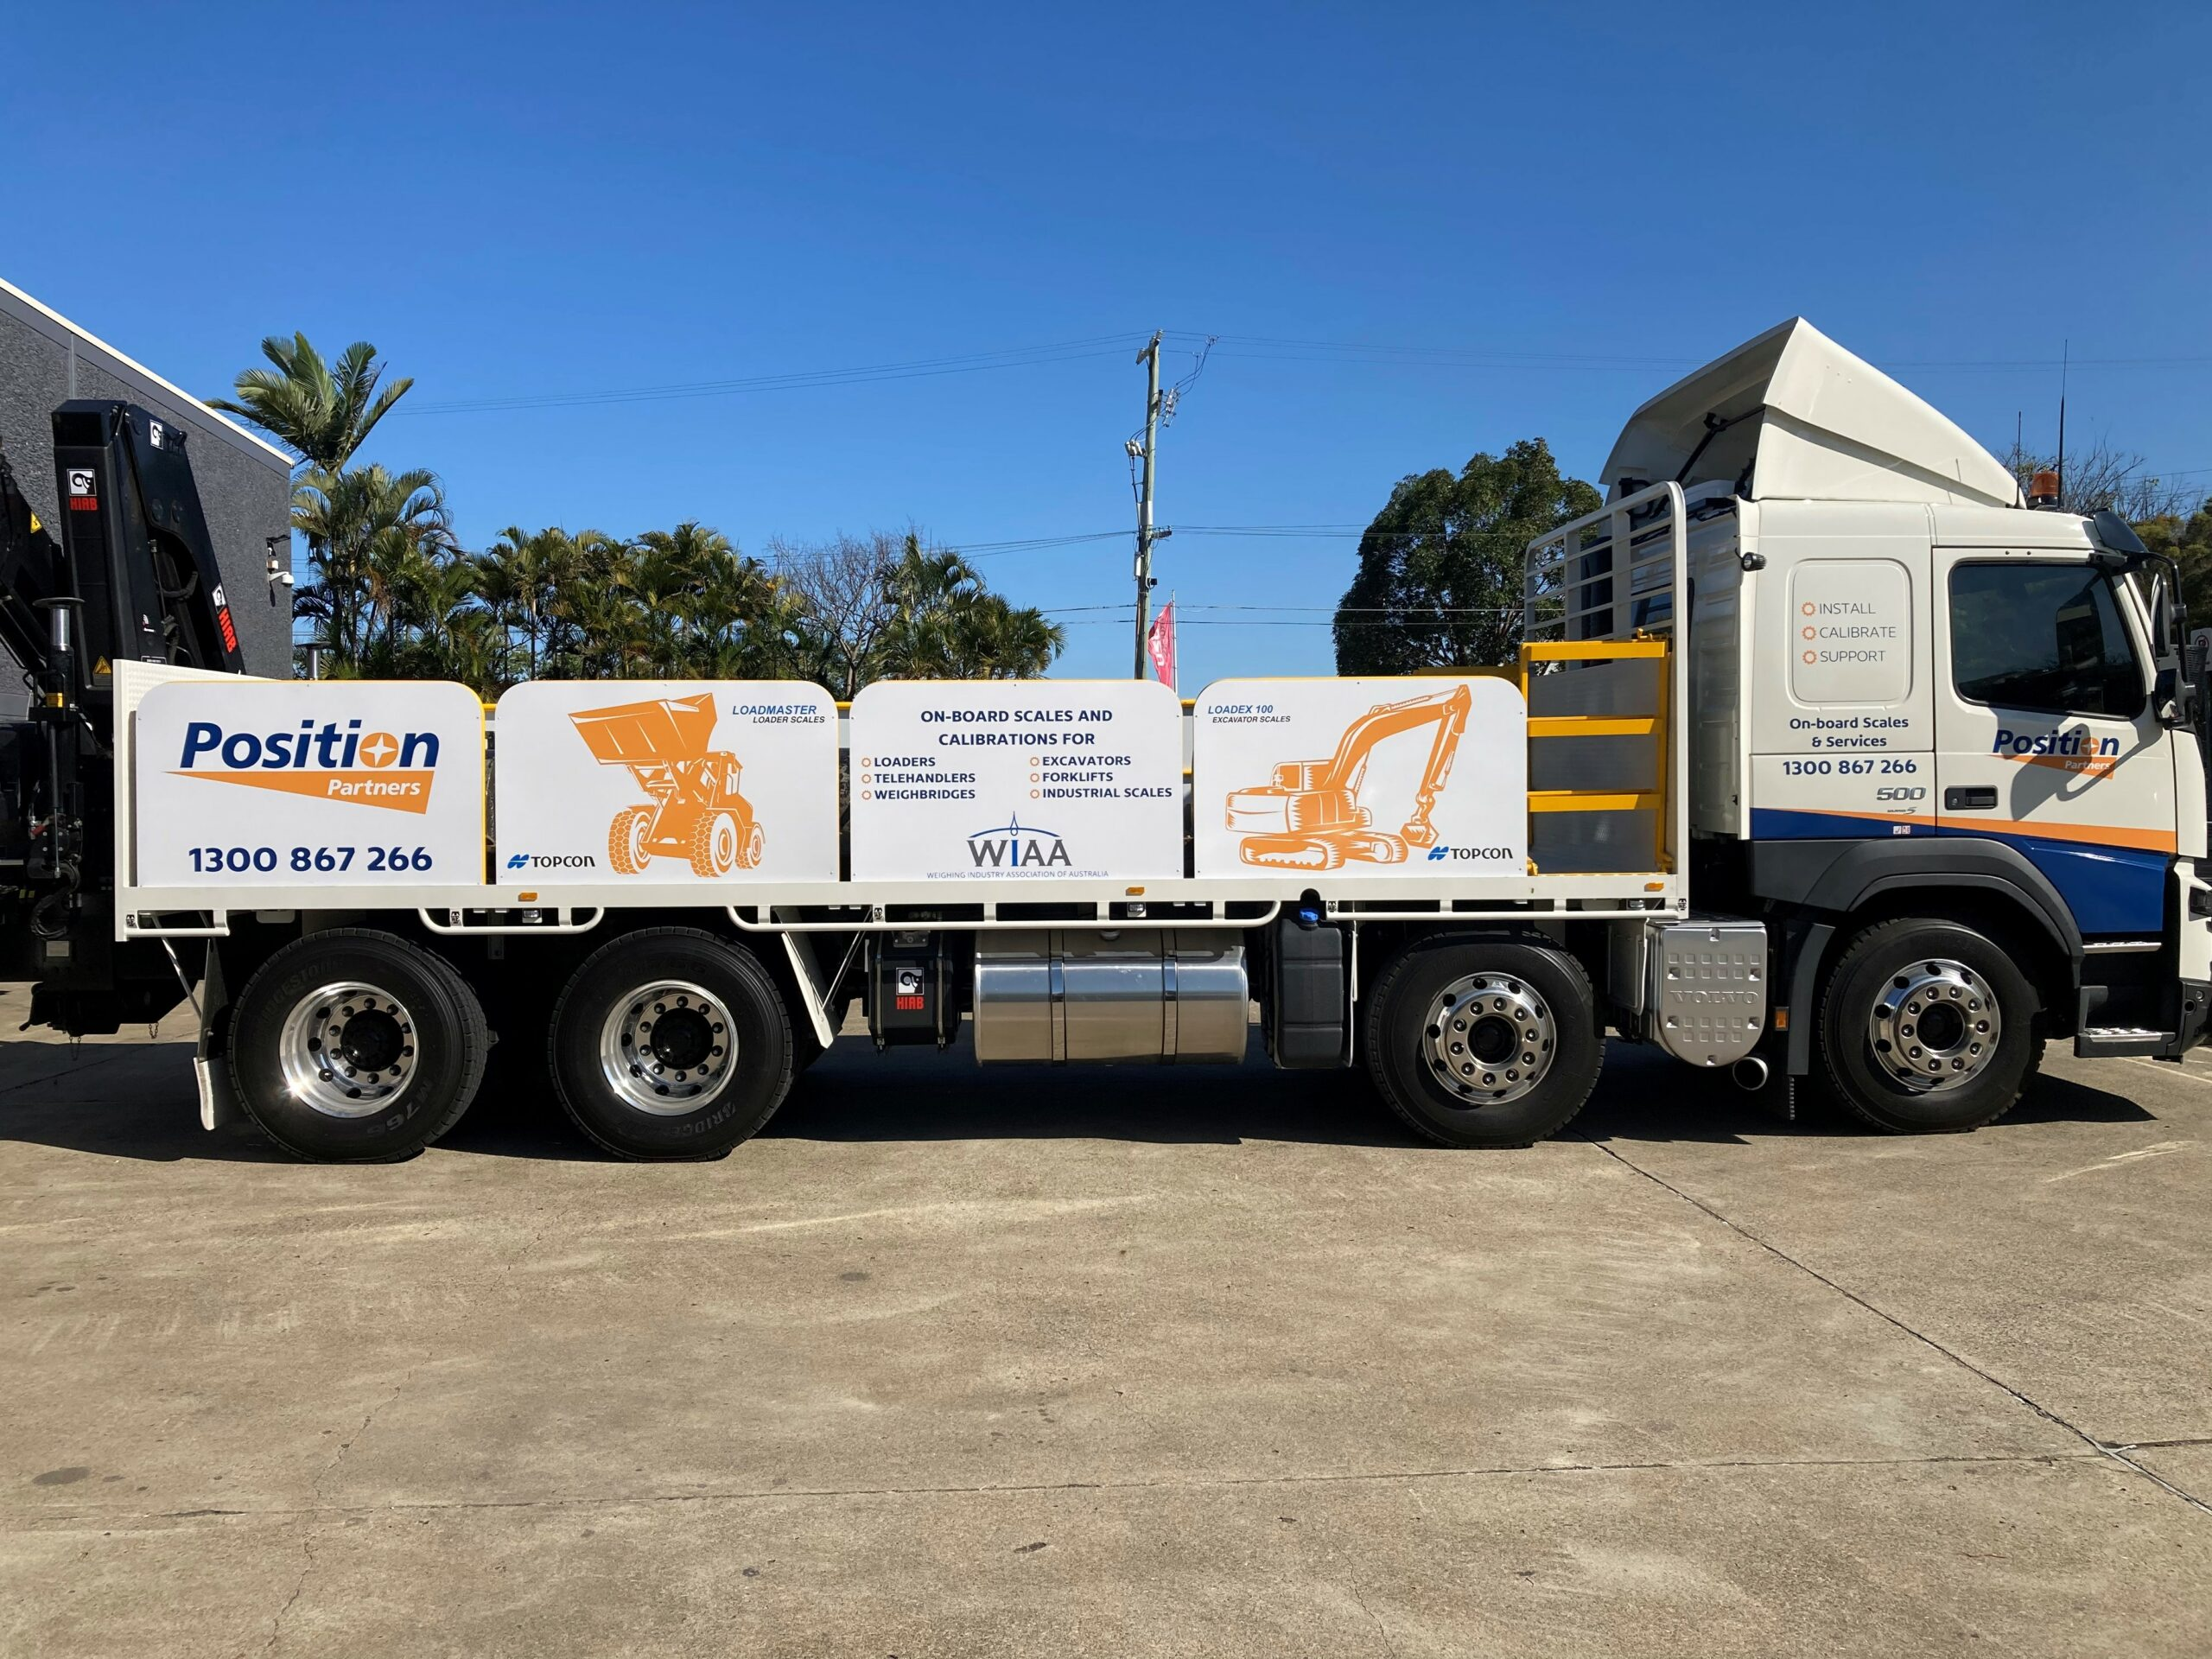 Position Partners introduces Australia-wide scale installation and calibration